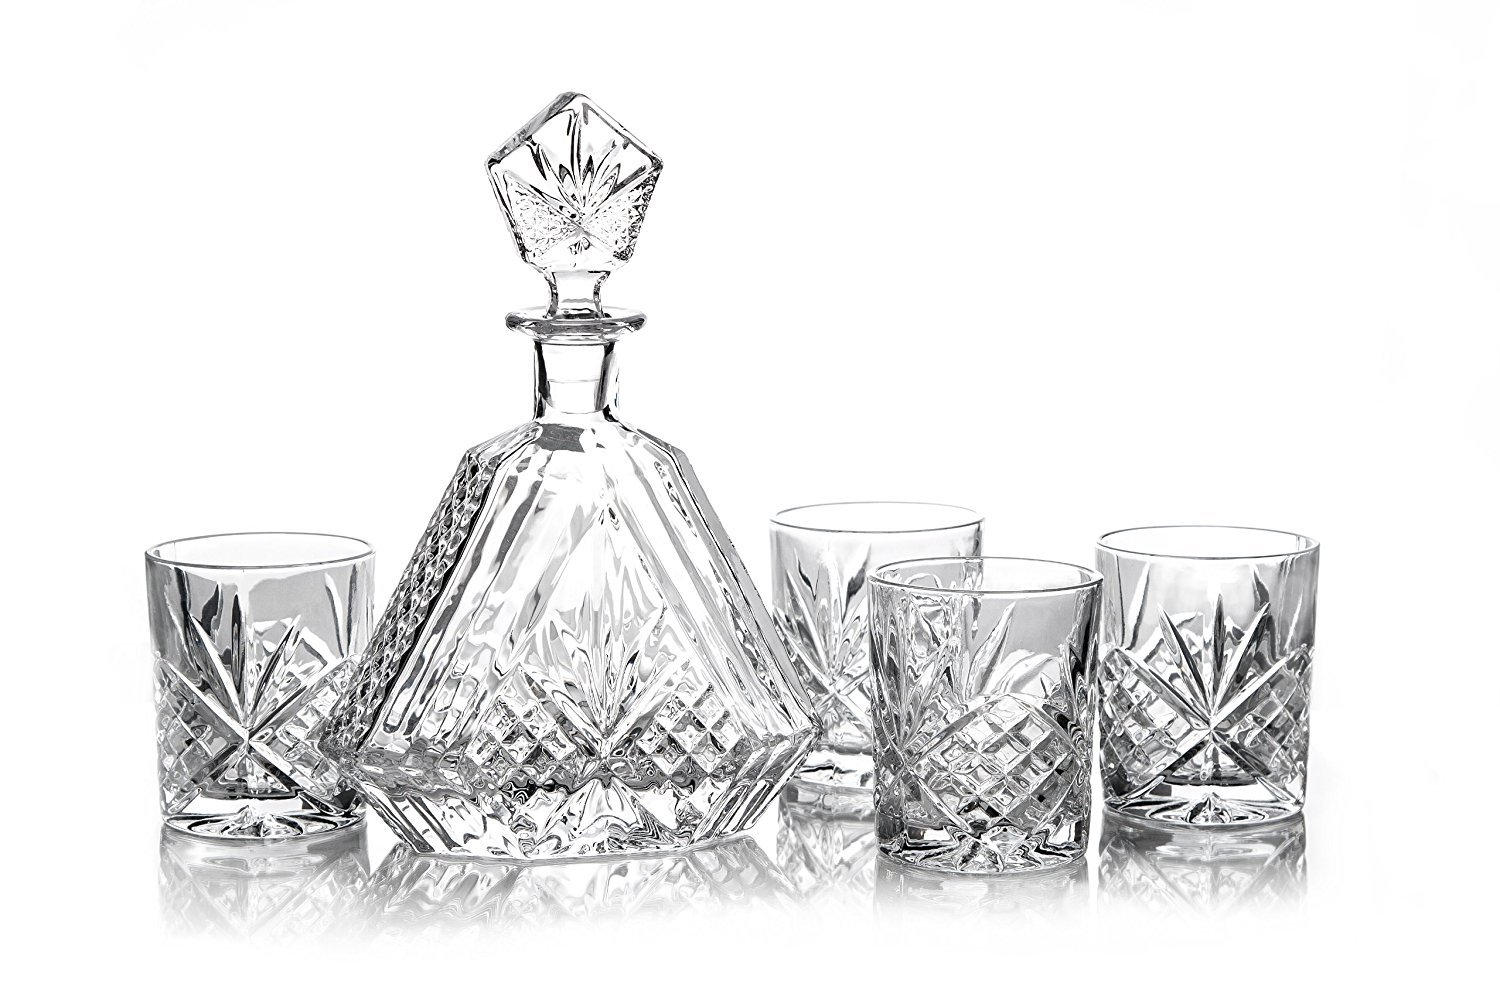 James Scott 5 PC crystal Bar Set, for Whiskey, Wine, and Liquor. This Irish Cut whiskey Set, includes a Triangular Decanter and Dof Glasses